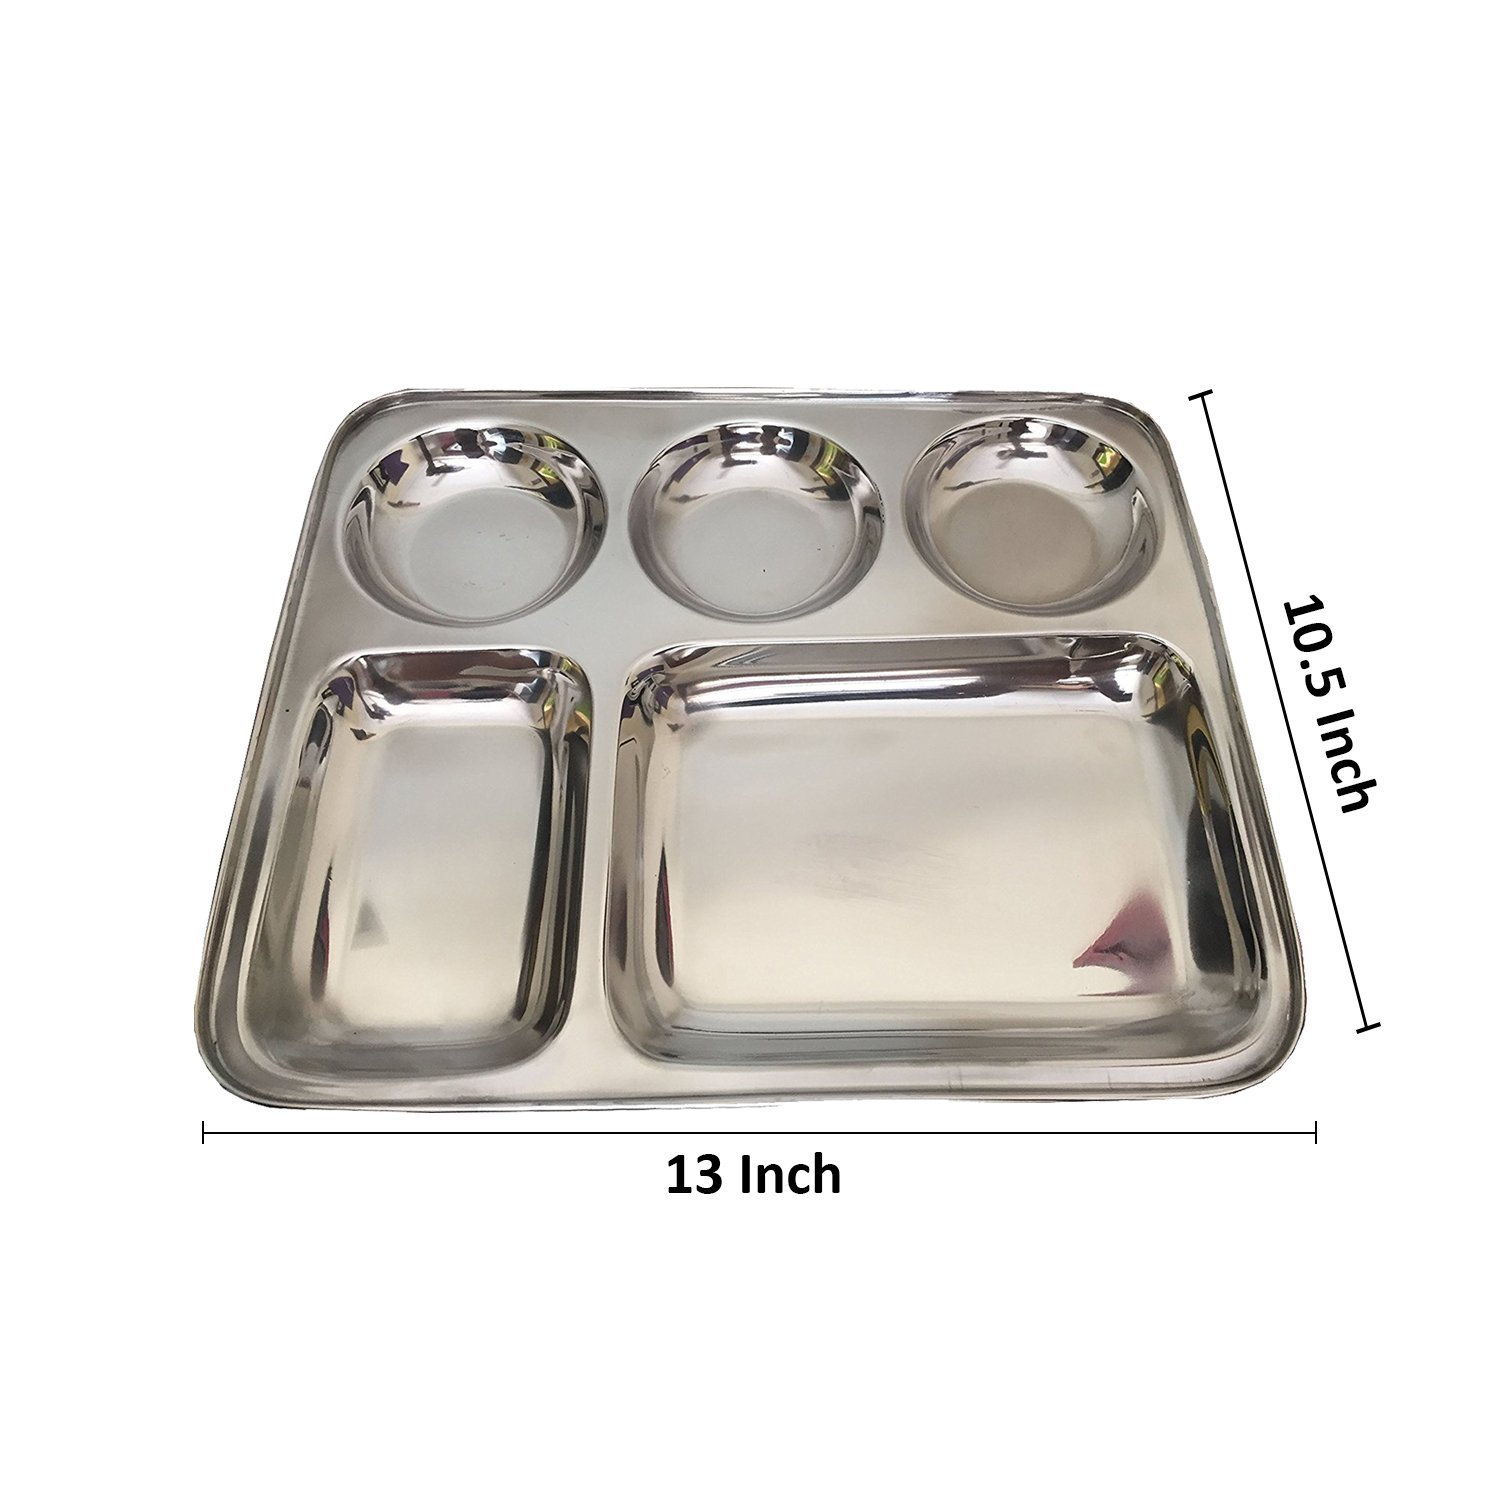 276fcd4b1d72 Stainless Steel Rectangular Thali Plate, 5 compartment Thali, Mess ...